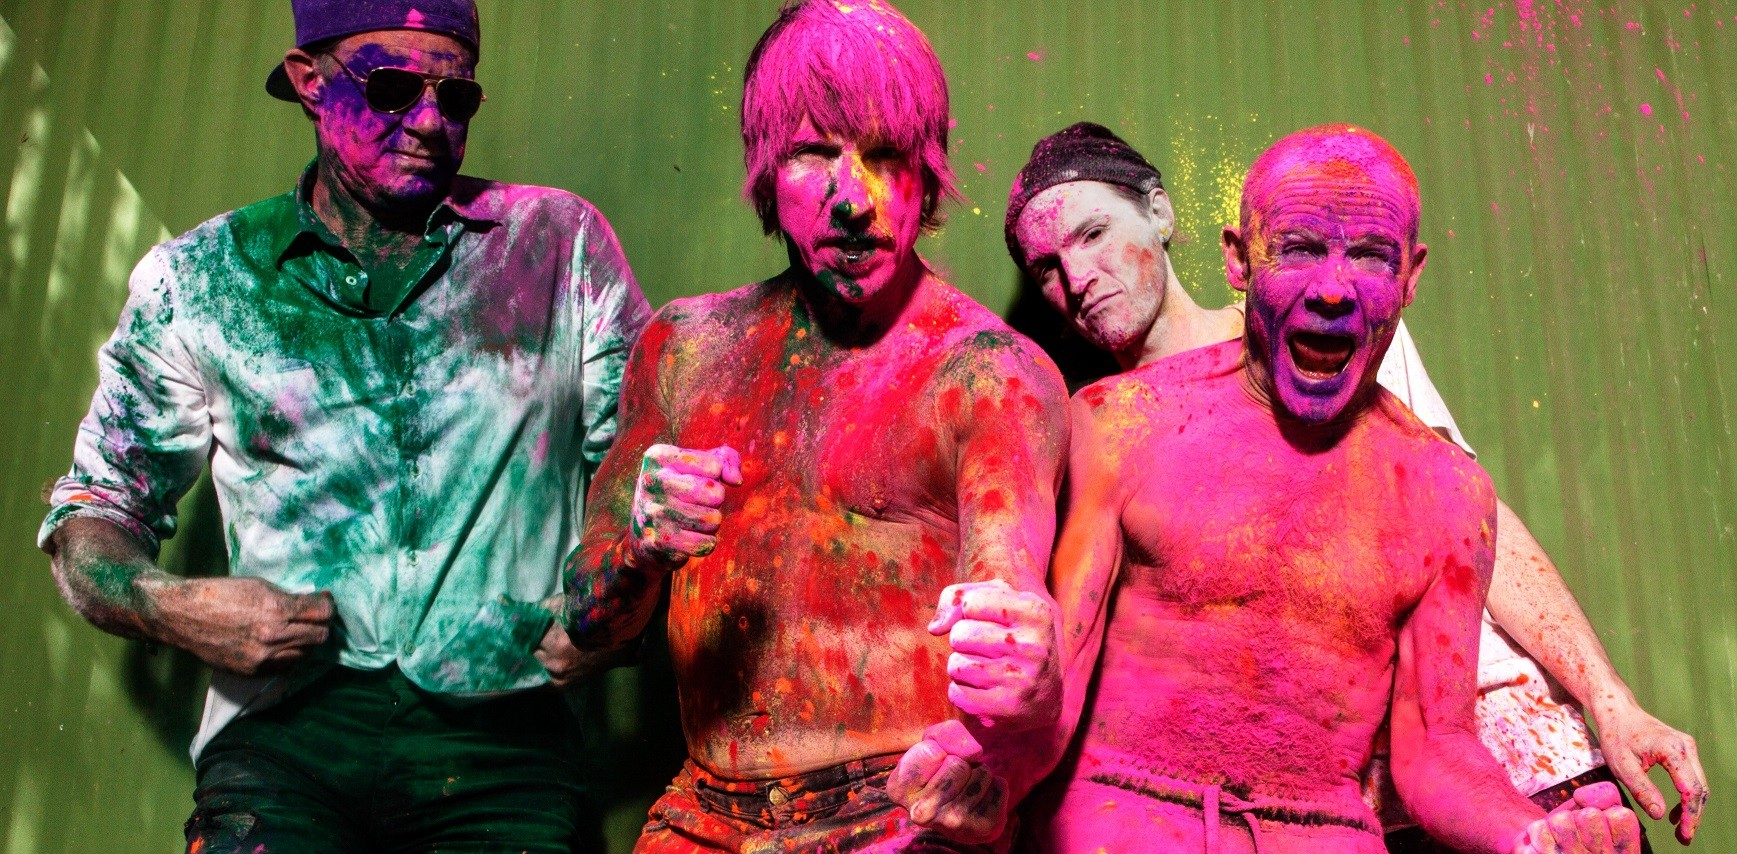 Red Hot Chili Peppers est confirmado no Rock in Rio 2017 (Foto: Divulgao)